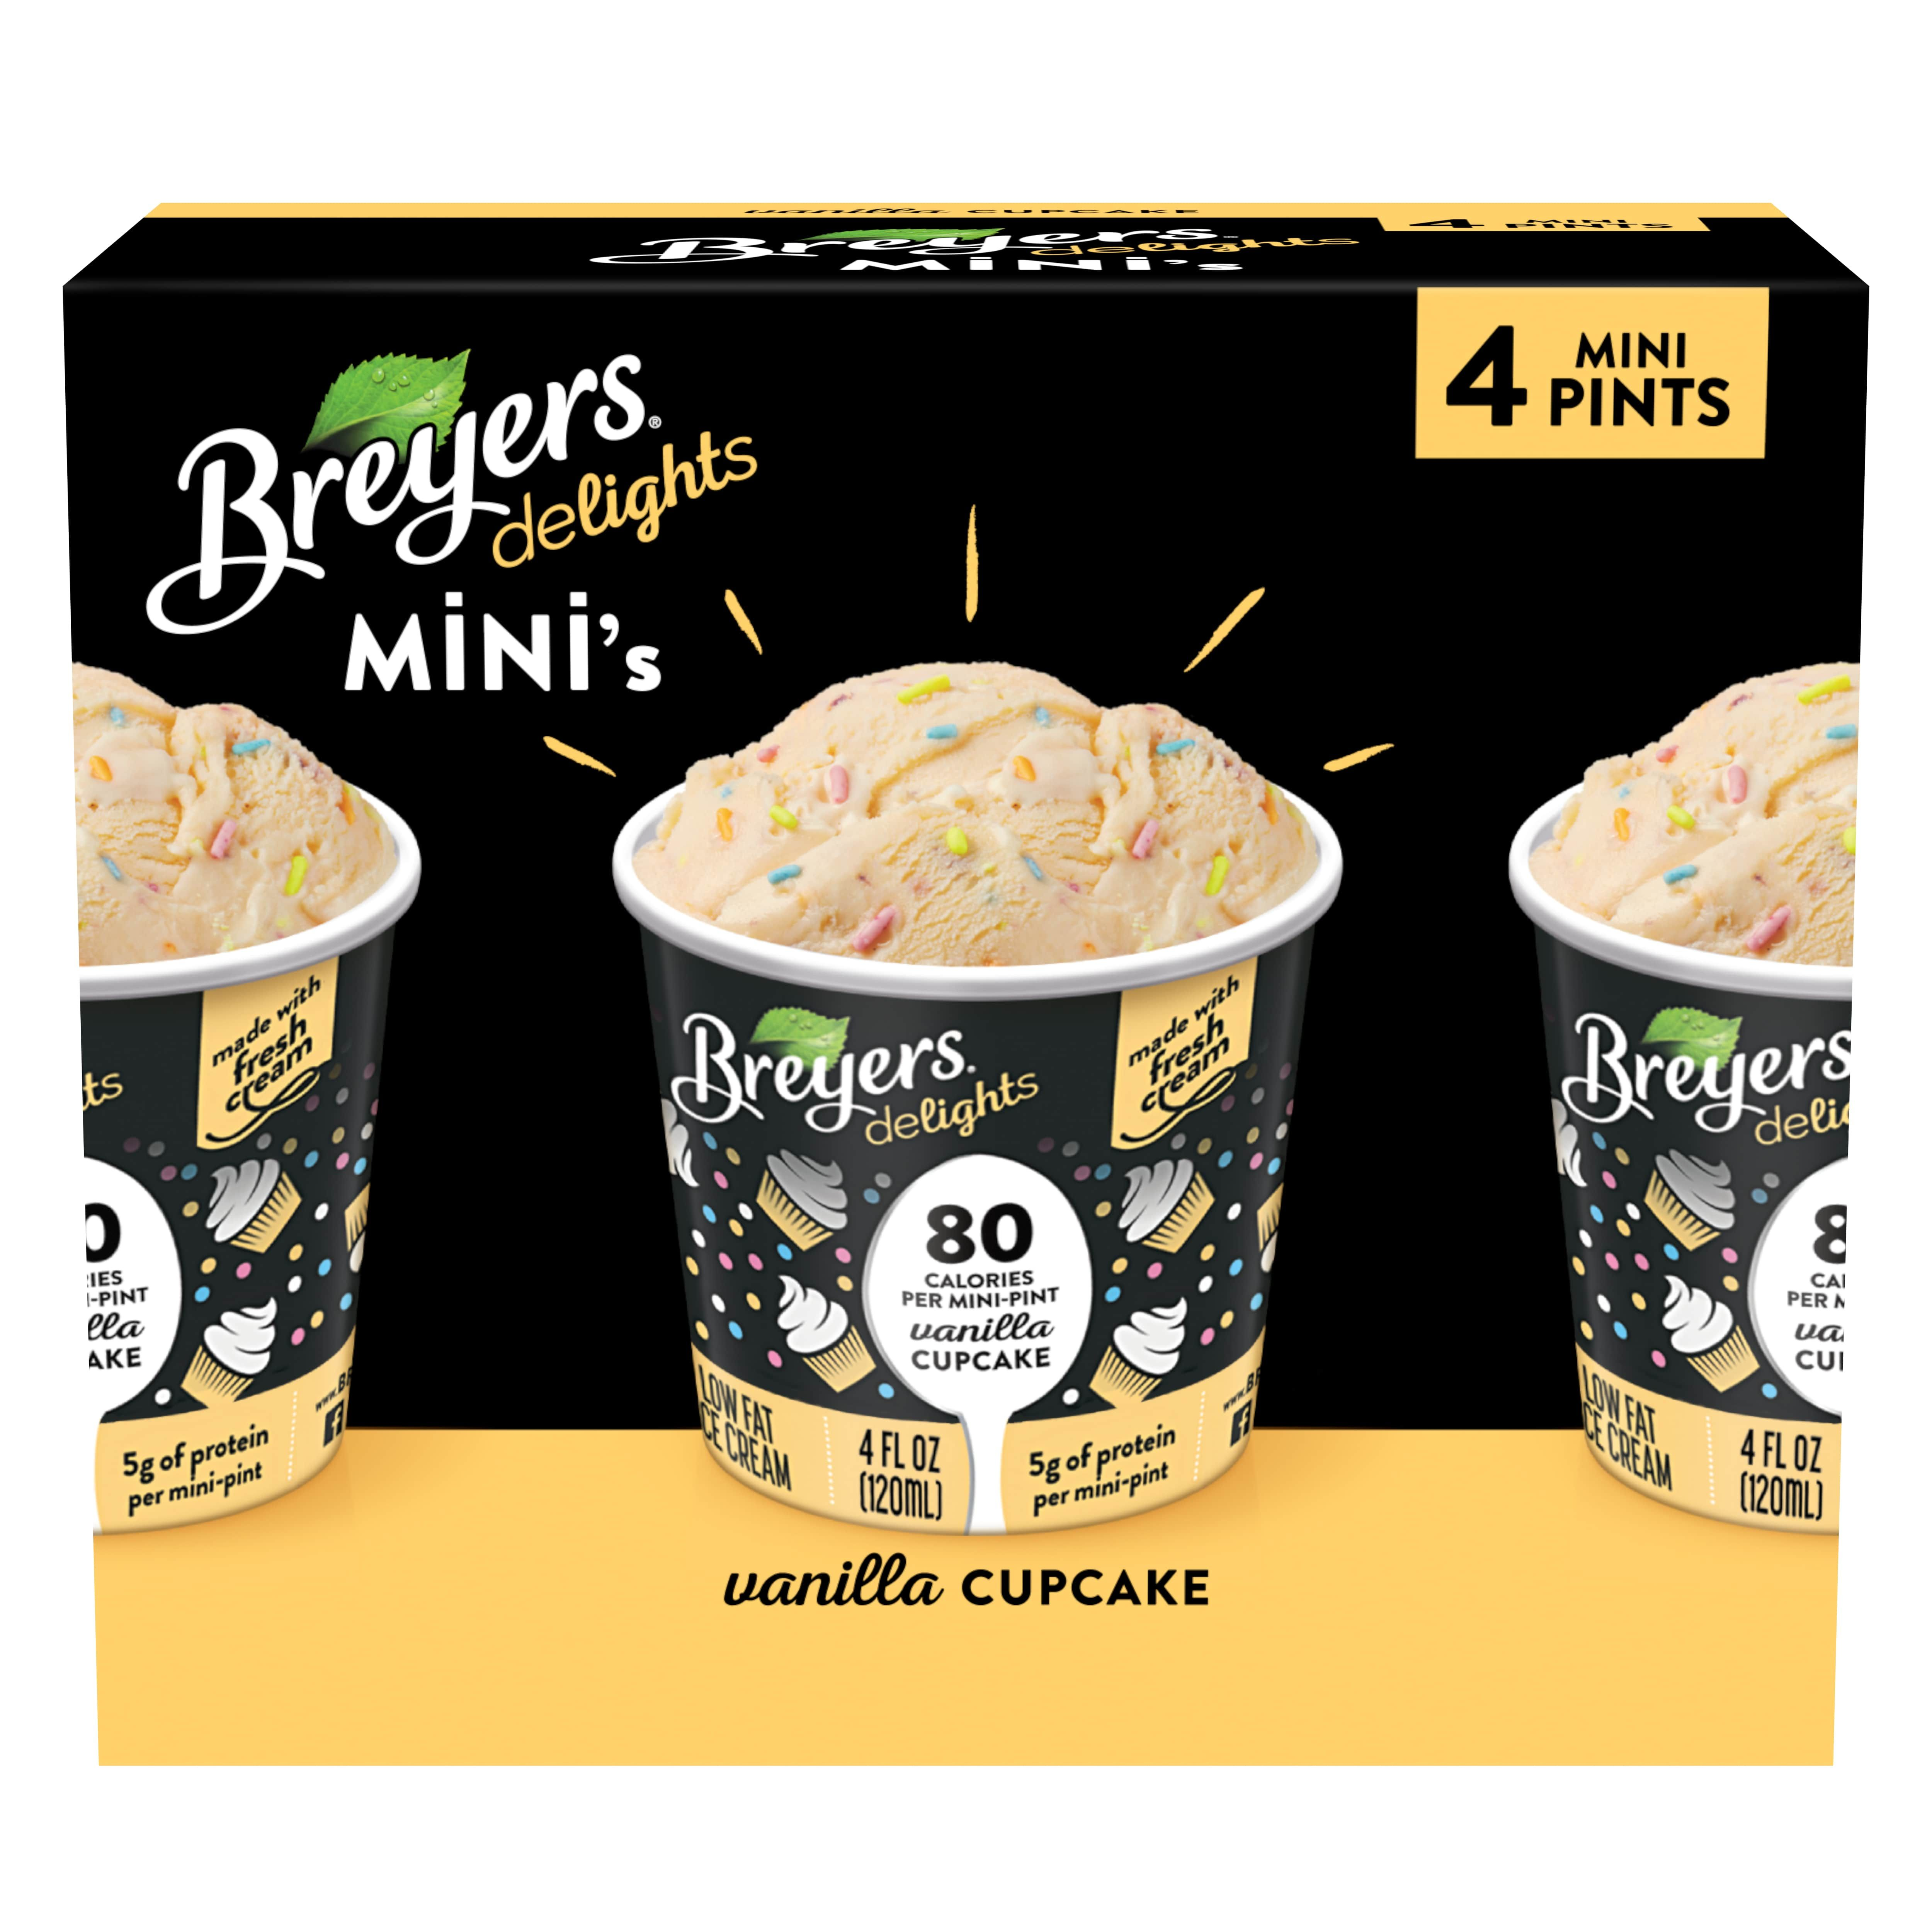 Breyers Now Sells 80Calorie Mini Tubs Of Ice Cream That